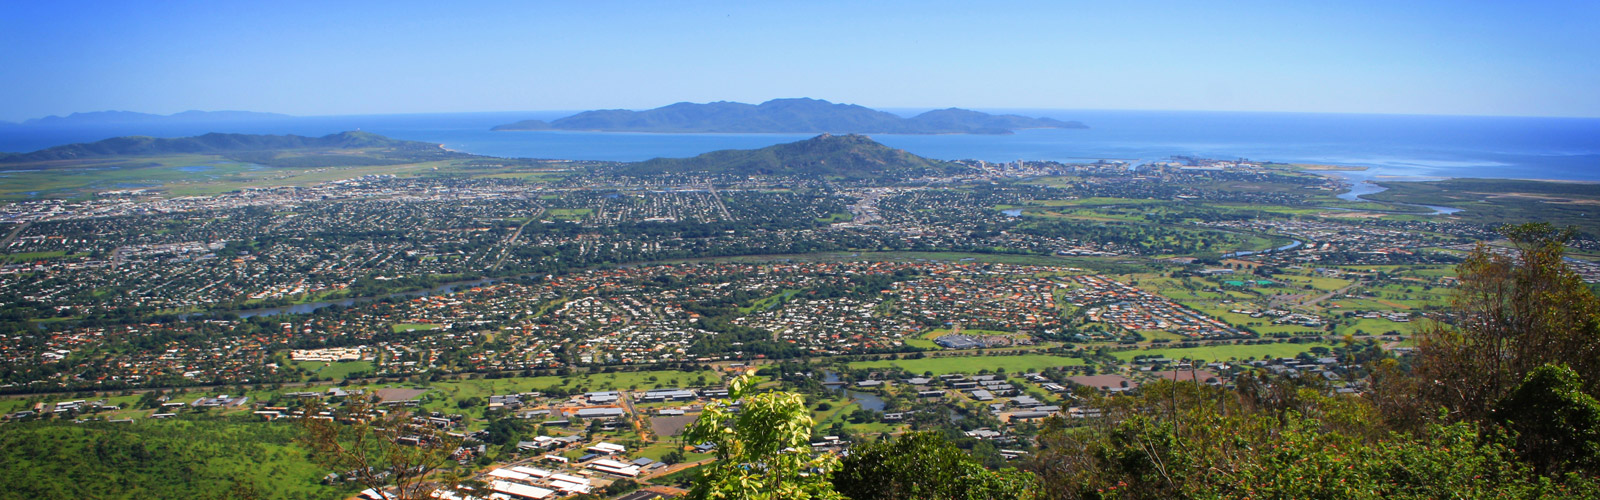 Townsville, Queensland